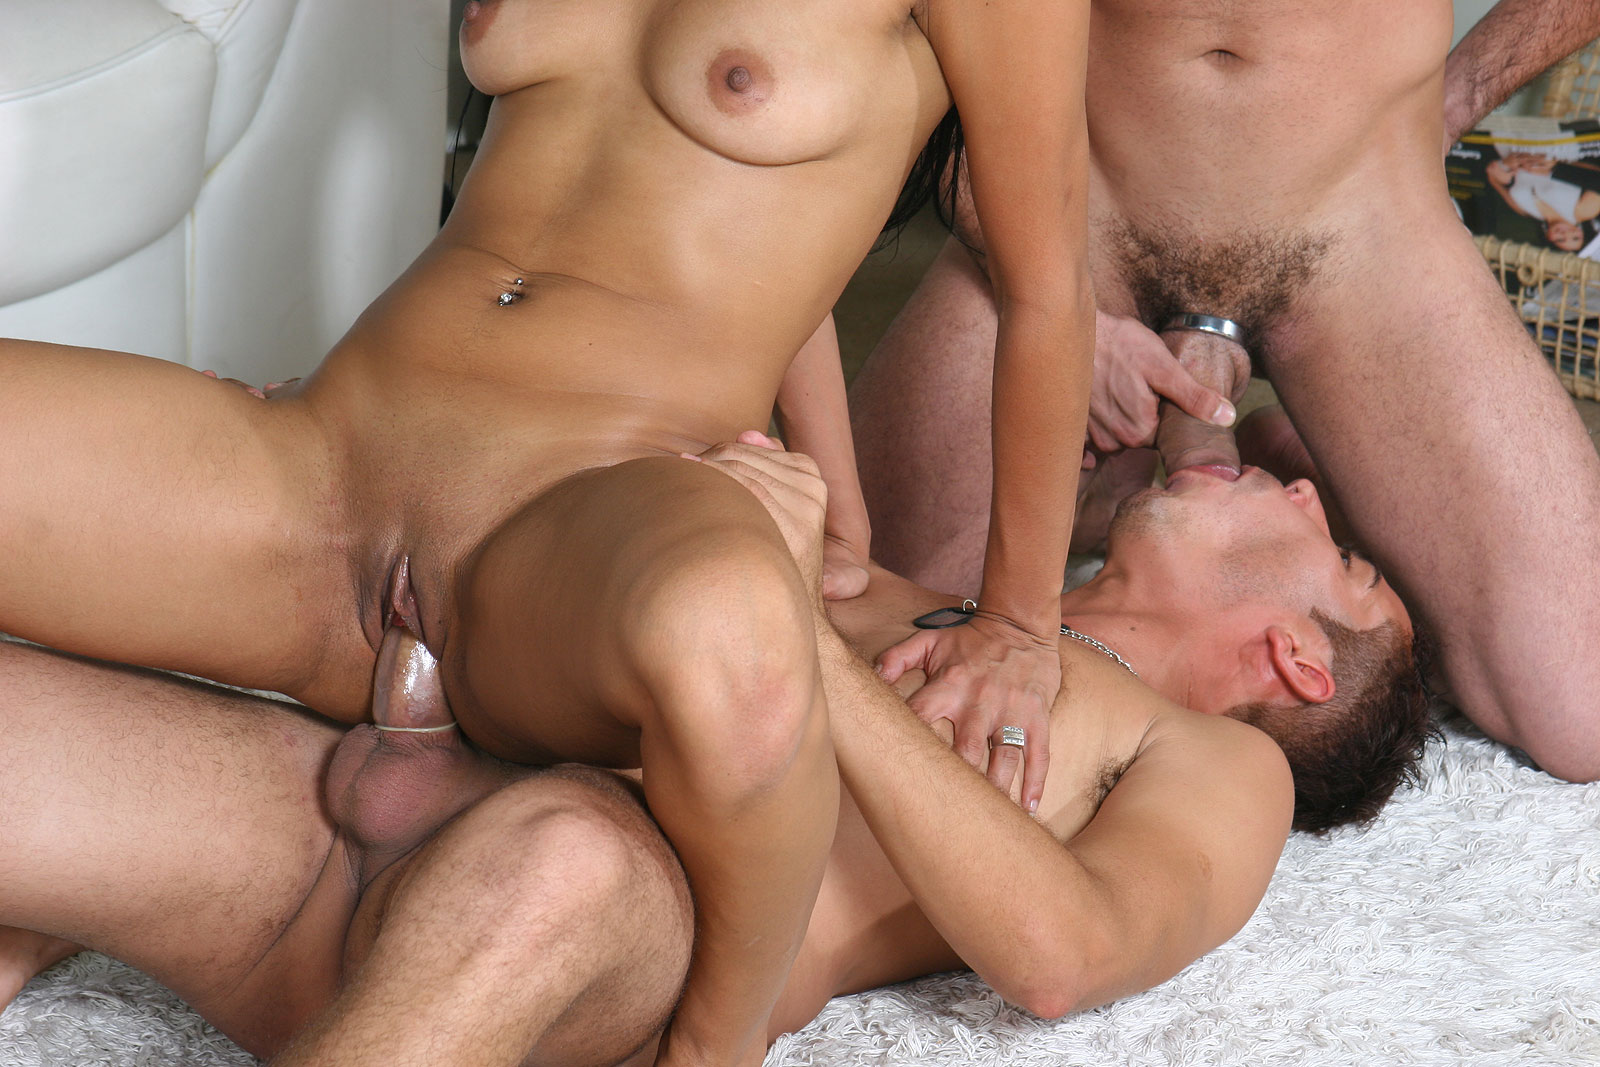 m mature woman and young boys